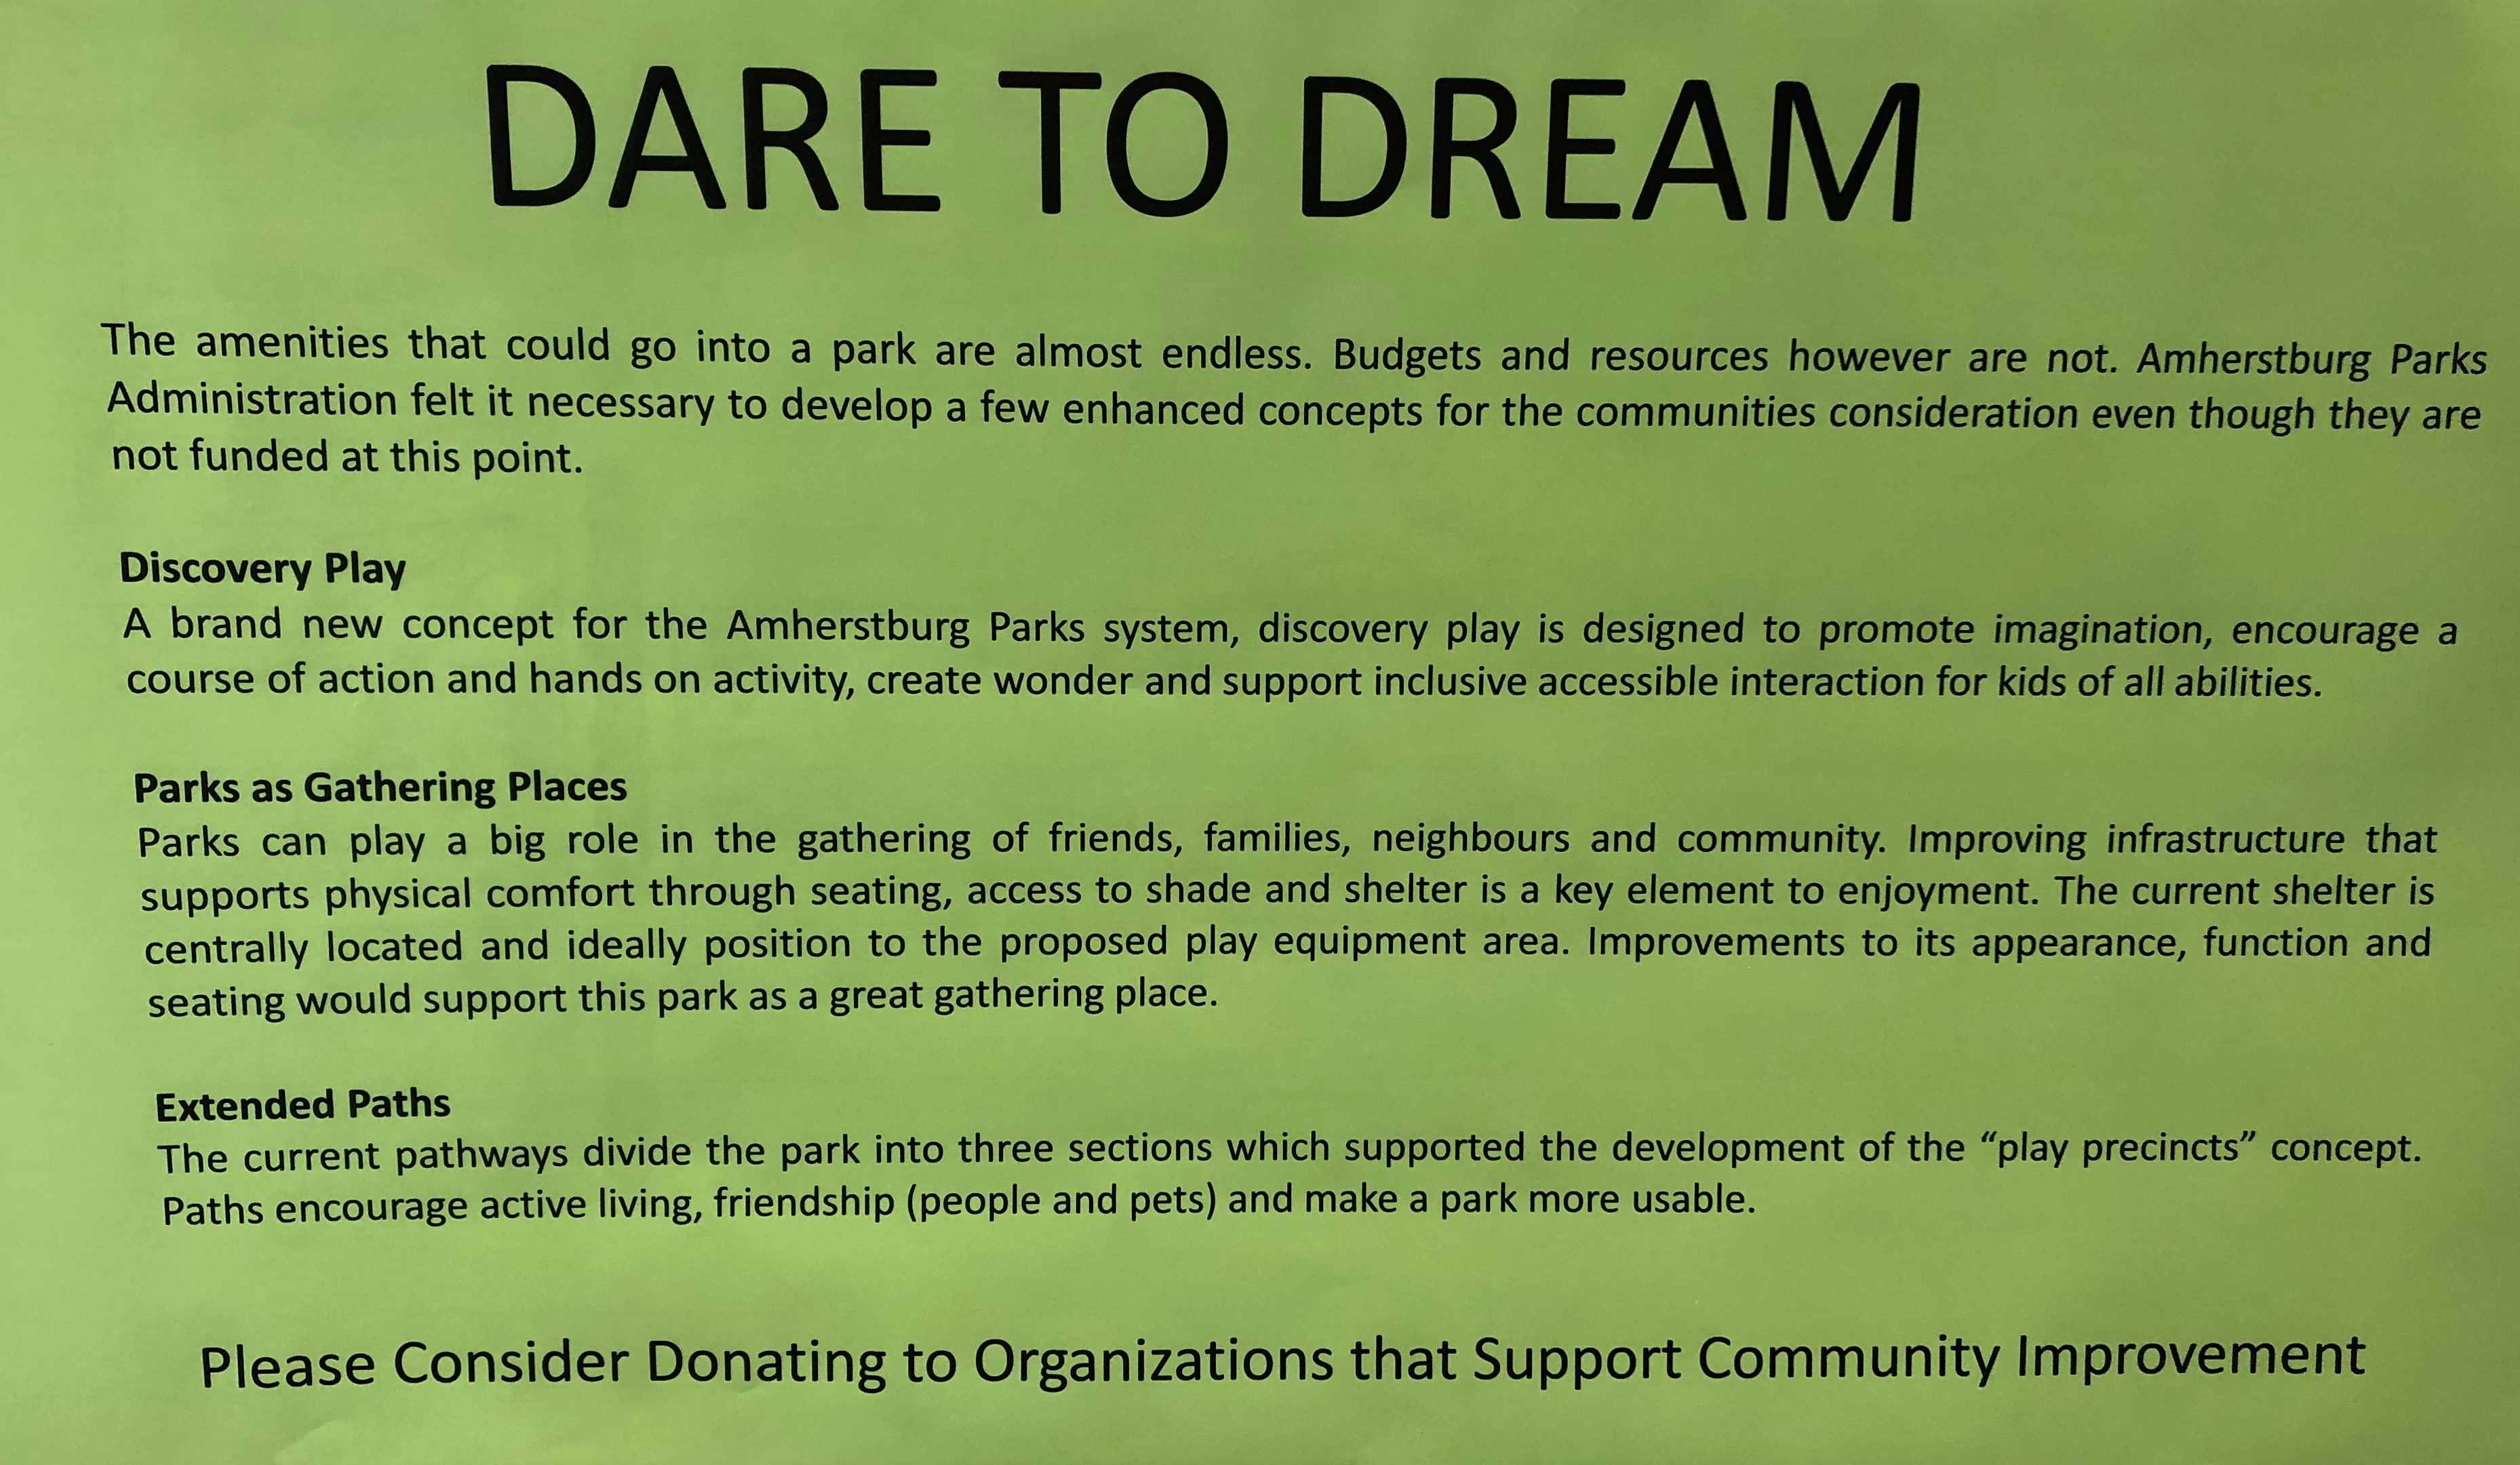 A story board encouraging residents to donate to community improvement groups.